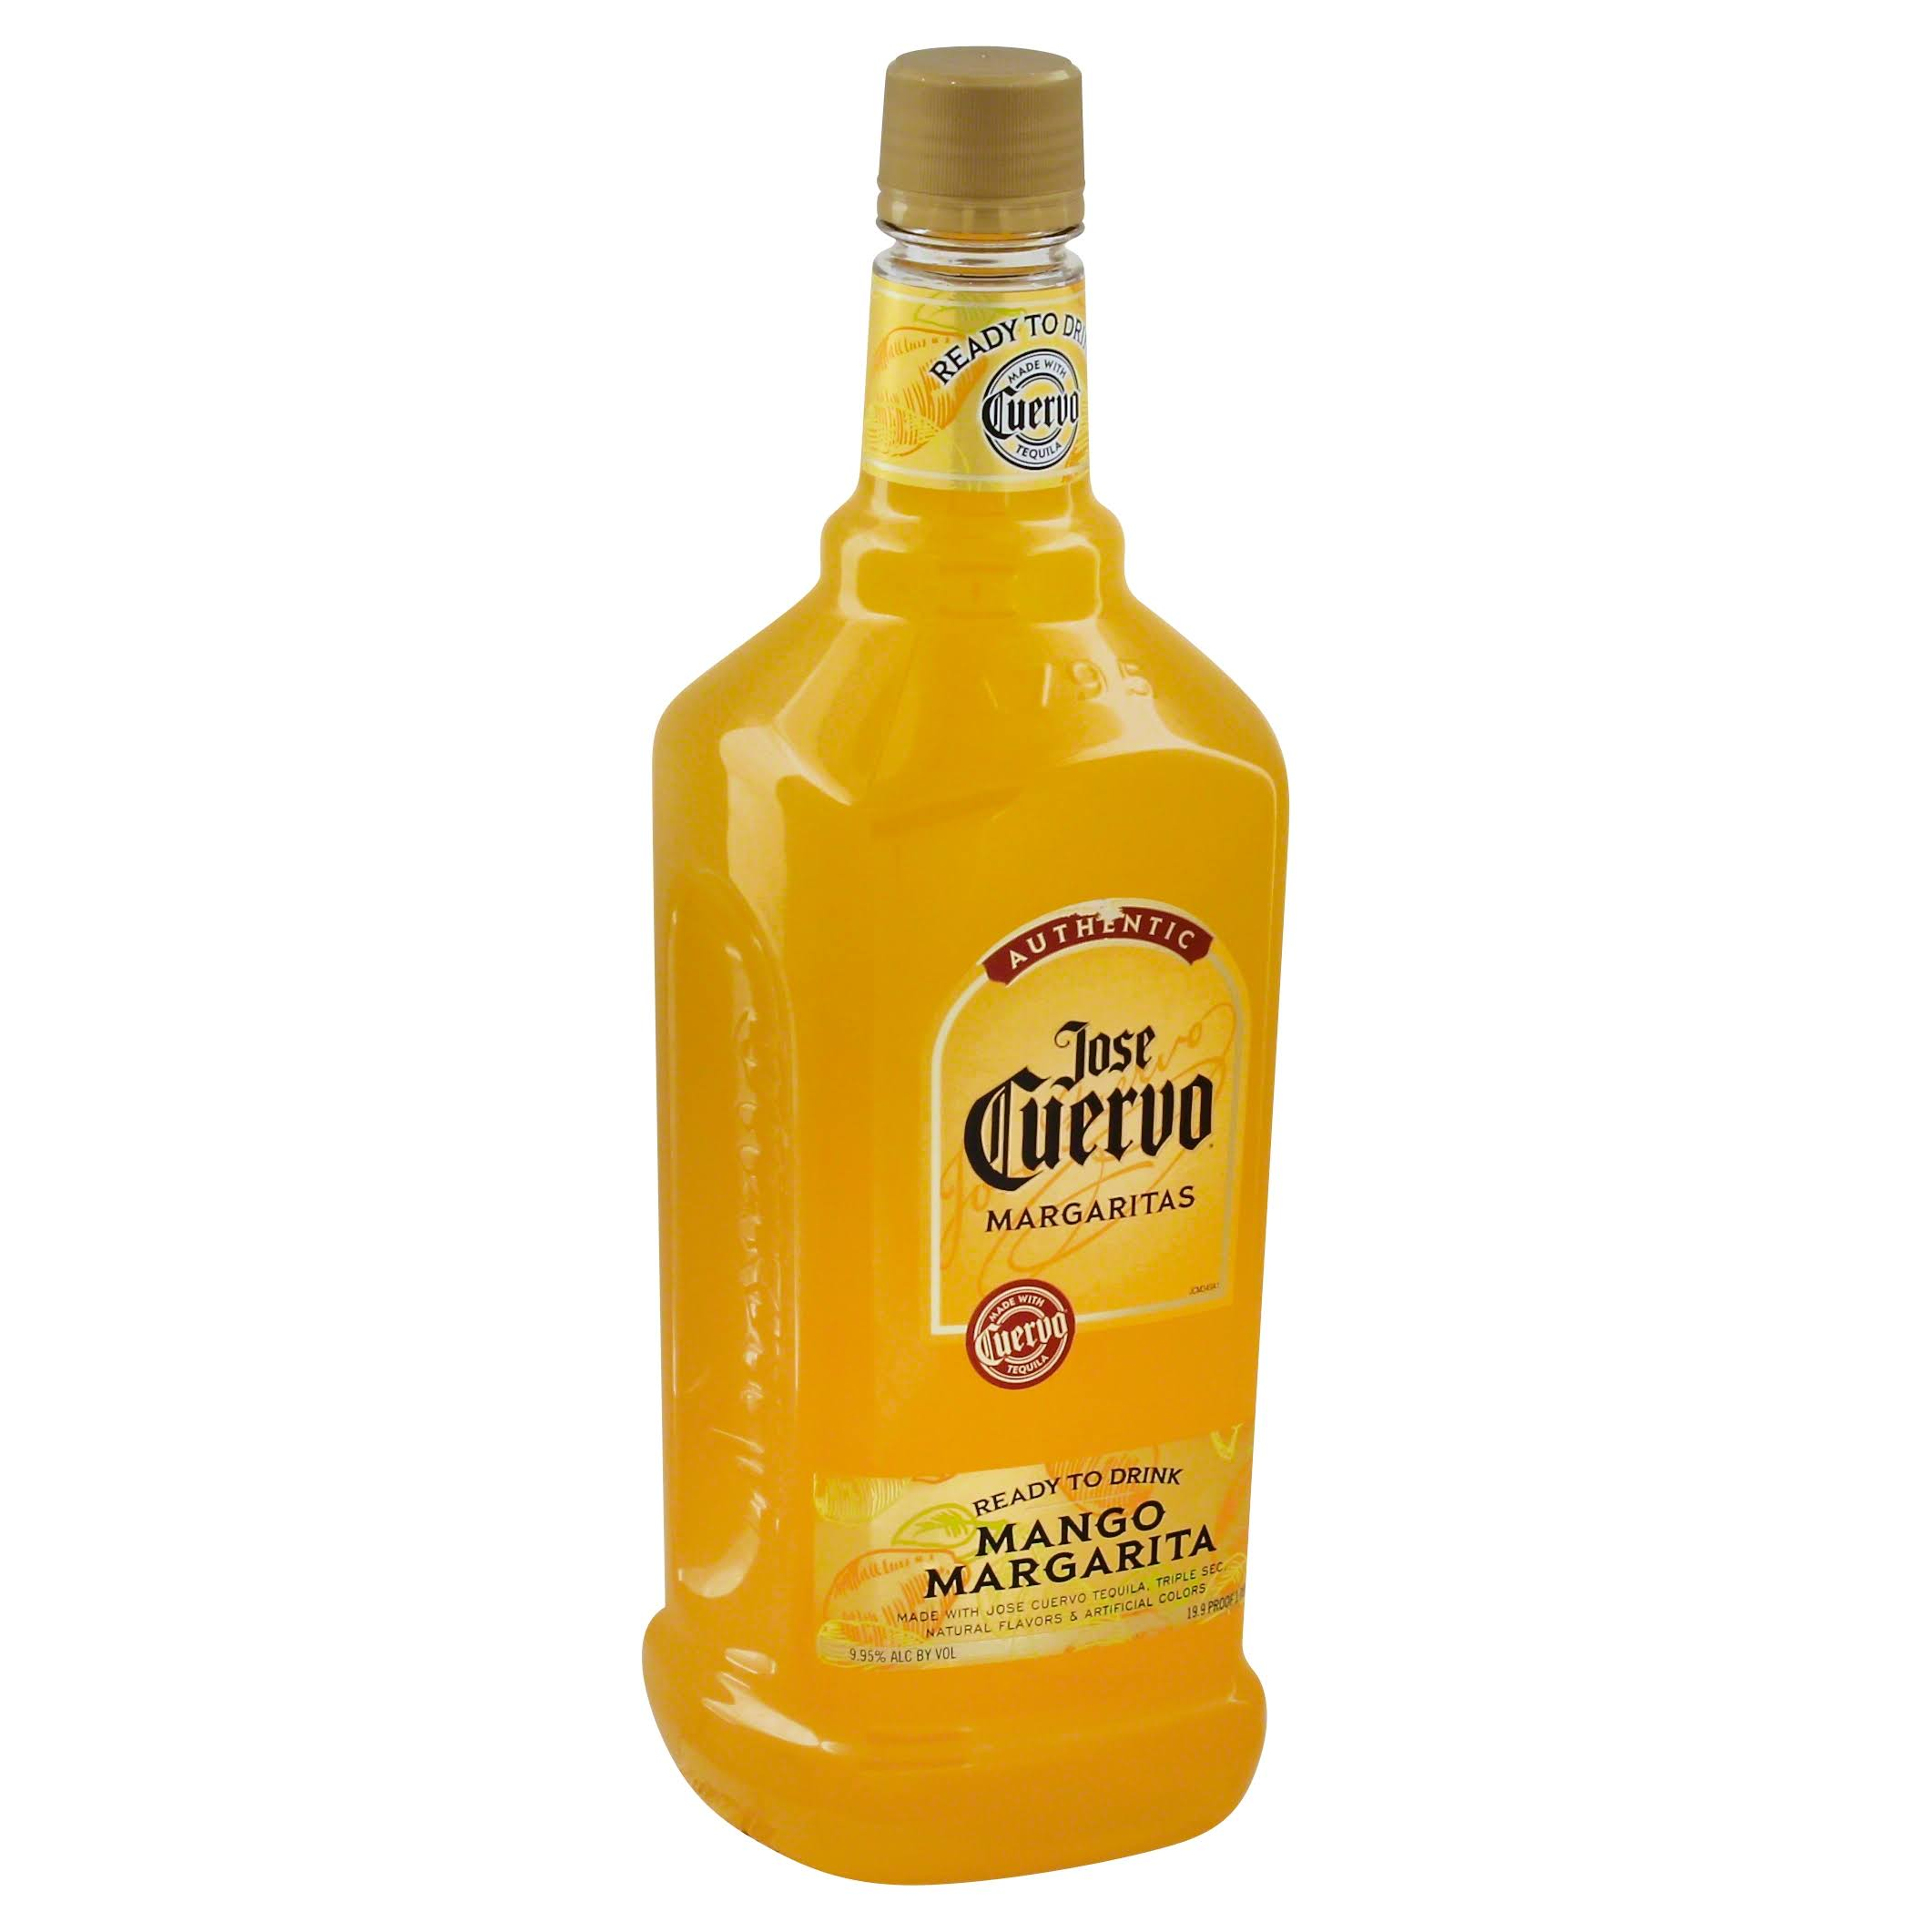 Jose Cuervo Authentic Mango Margarita - 1.75 L bottle